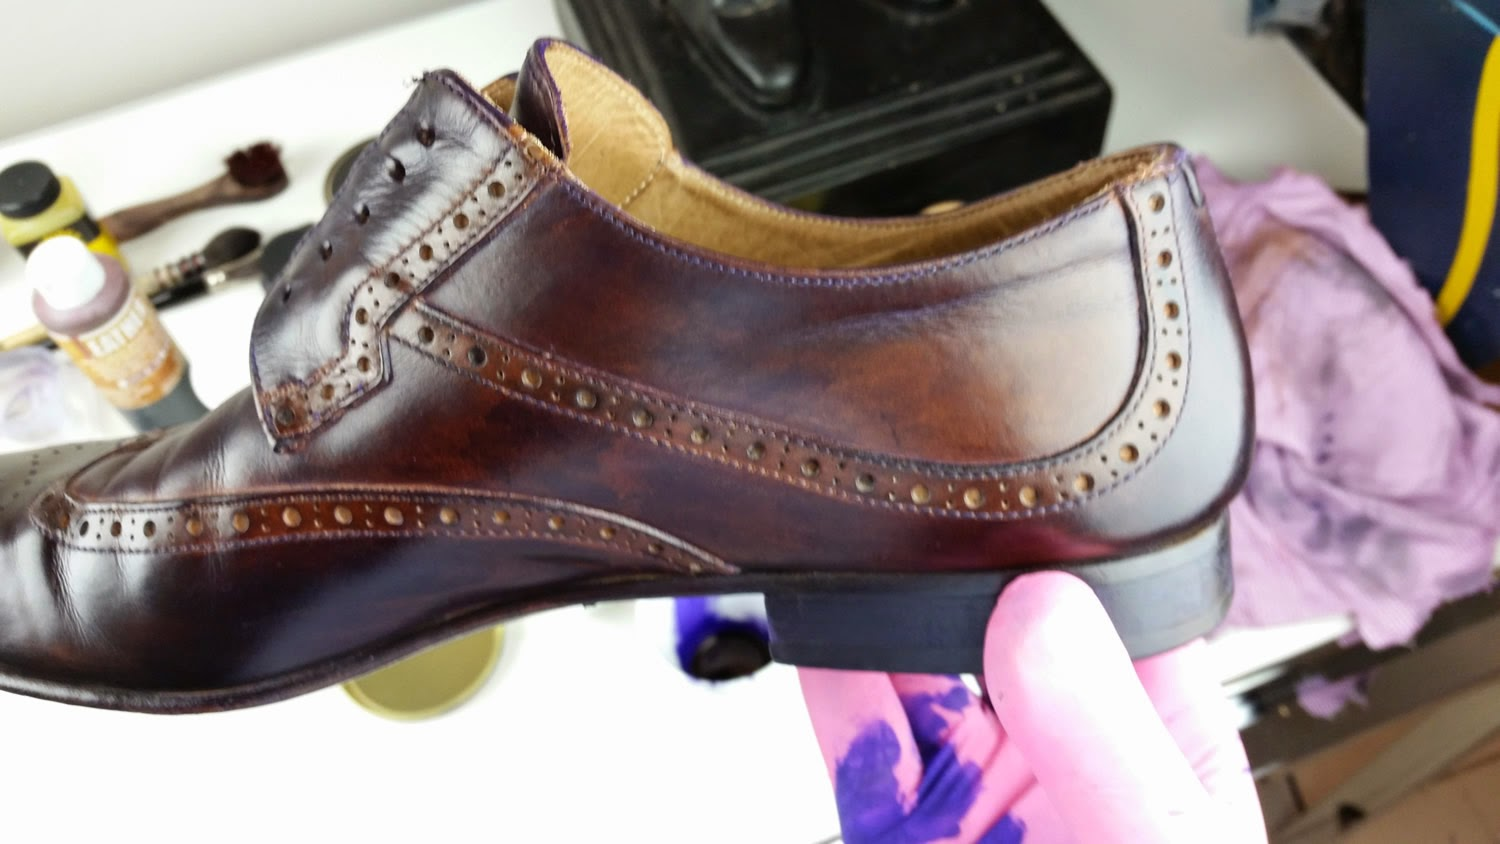 Le Noeud Papillon Of Sydney For Lovers Bow Ties August 2014 New Tie Knot Styles Diagrams Http Lenoeudpapillonblogspotcom 2012 Boots That Were 20 Years Old And On Friday After Receiving A Ruby Brown Black Patina Found Brand Home With Stockbroker In